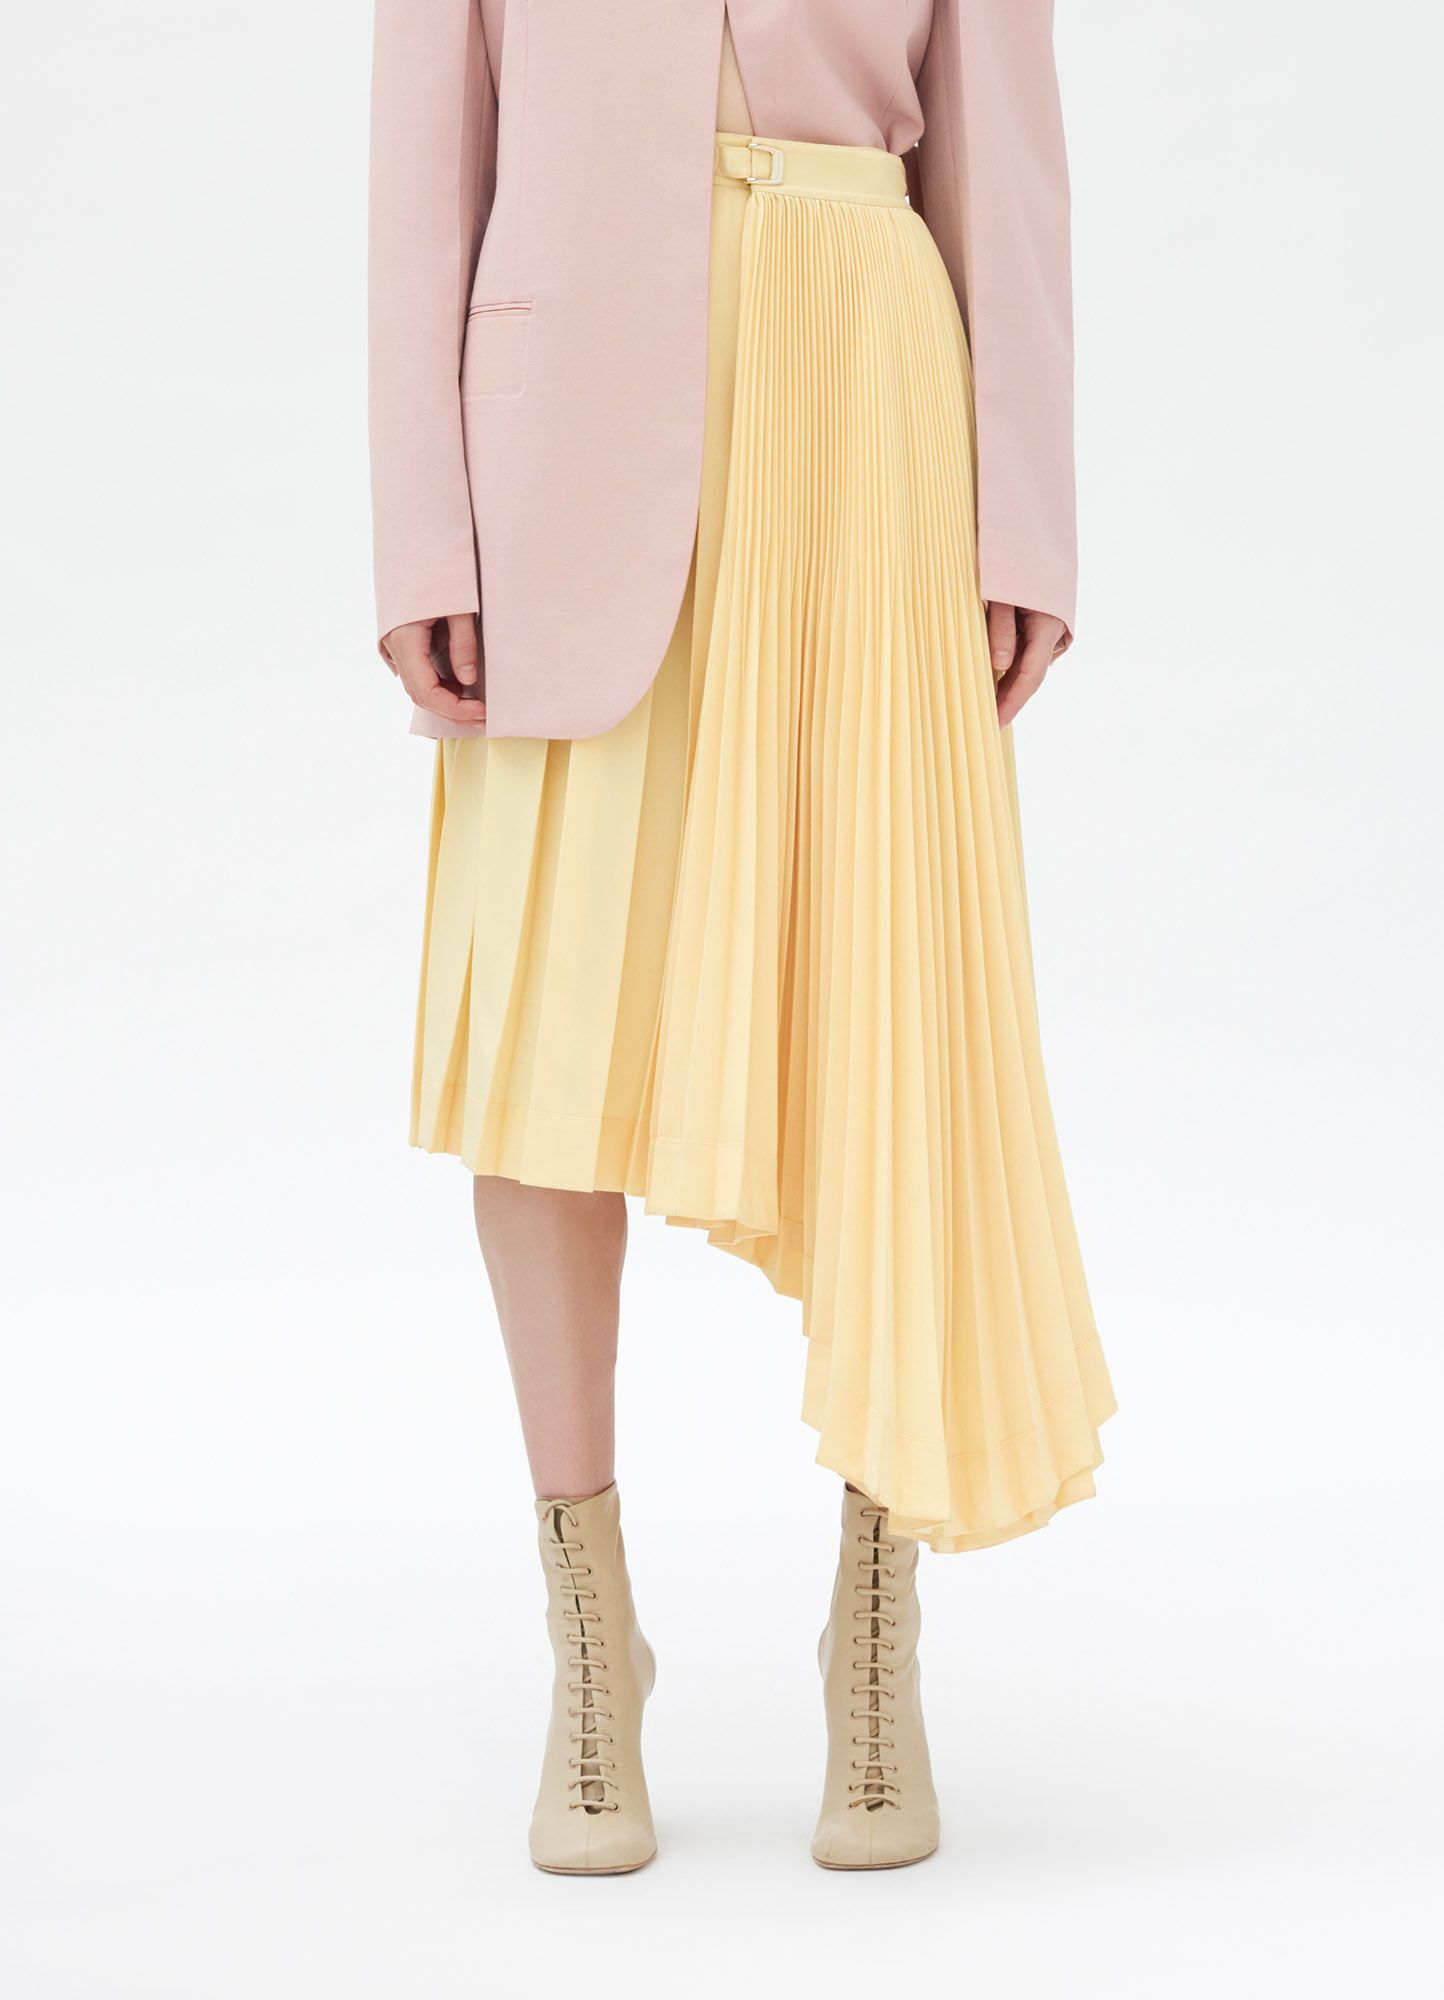 4445884e2e52 Asymmetrical pleated skirt in polyester fabric | Celine | Pleated ...